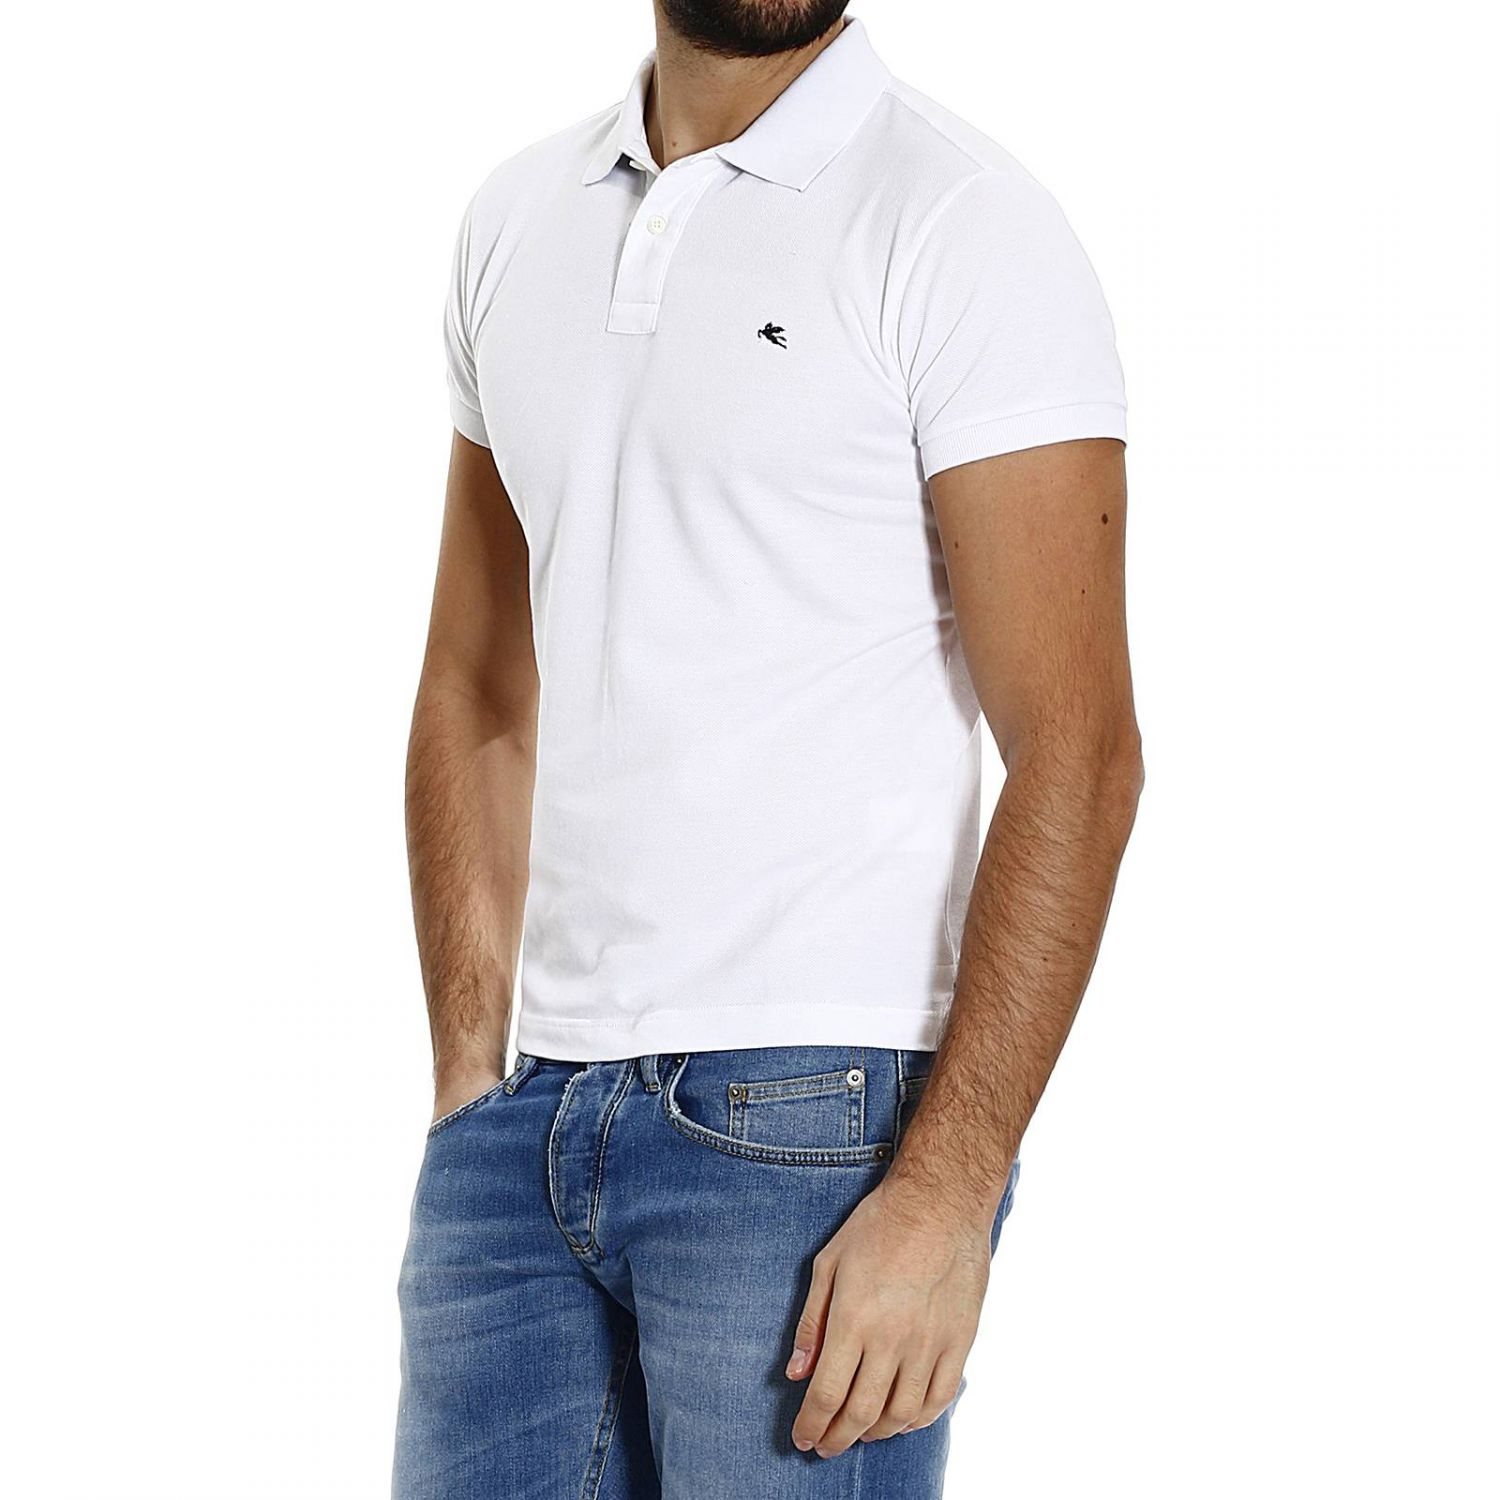 Lyst etro t shirt polo half sleeve nido d 39 ape sotto for Full sleeve polo t shirts